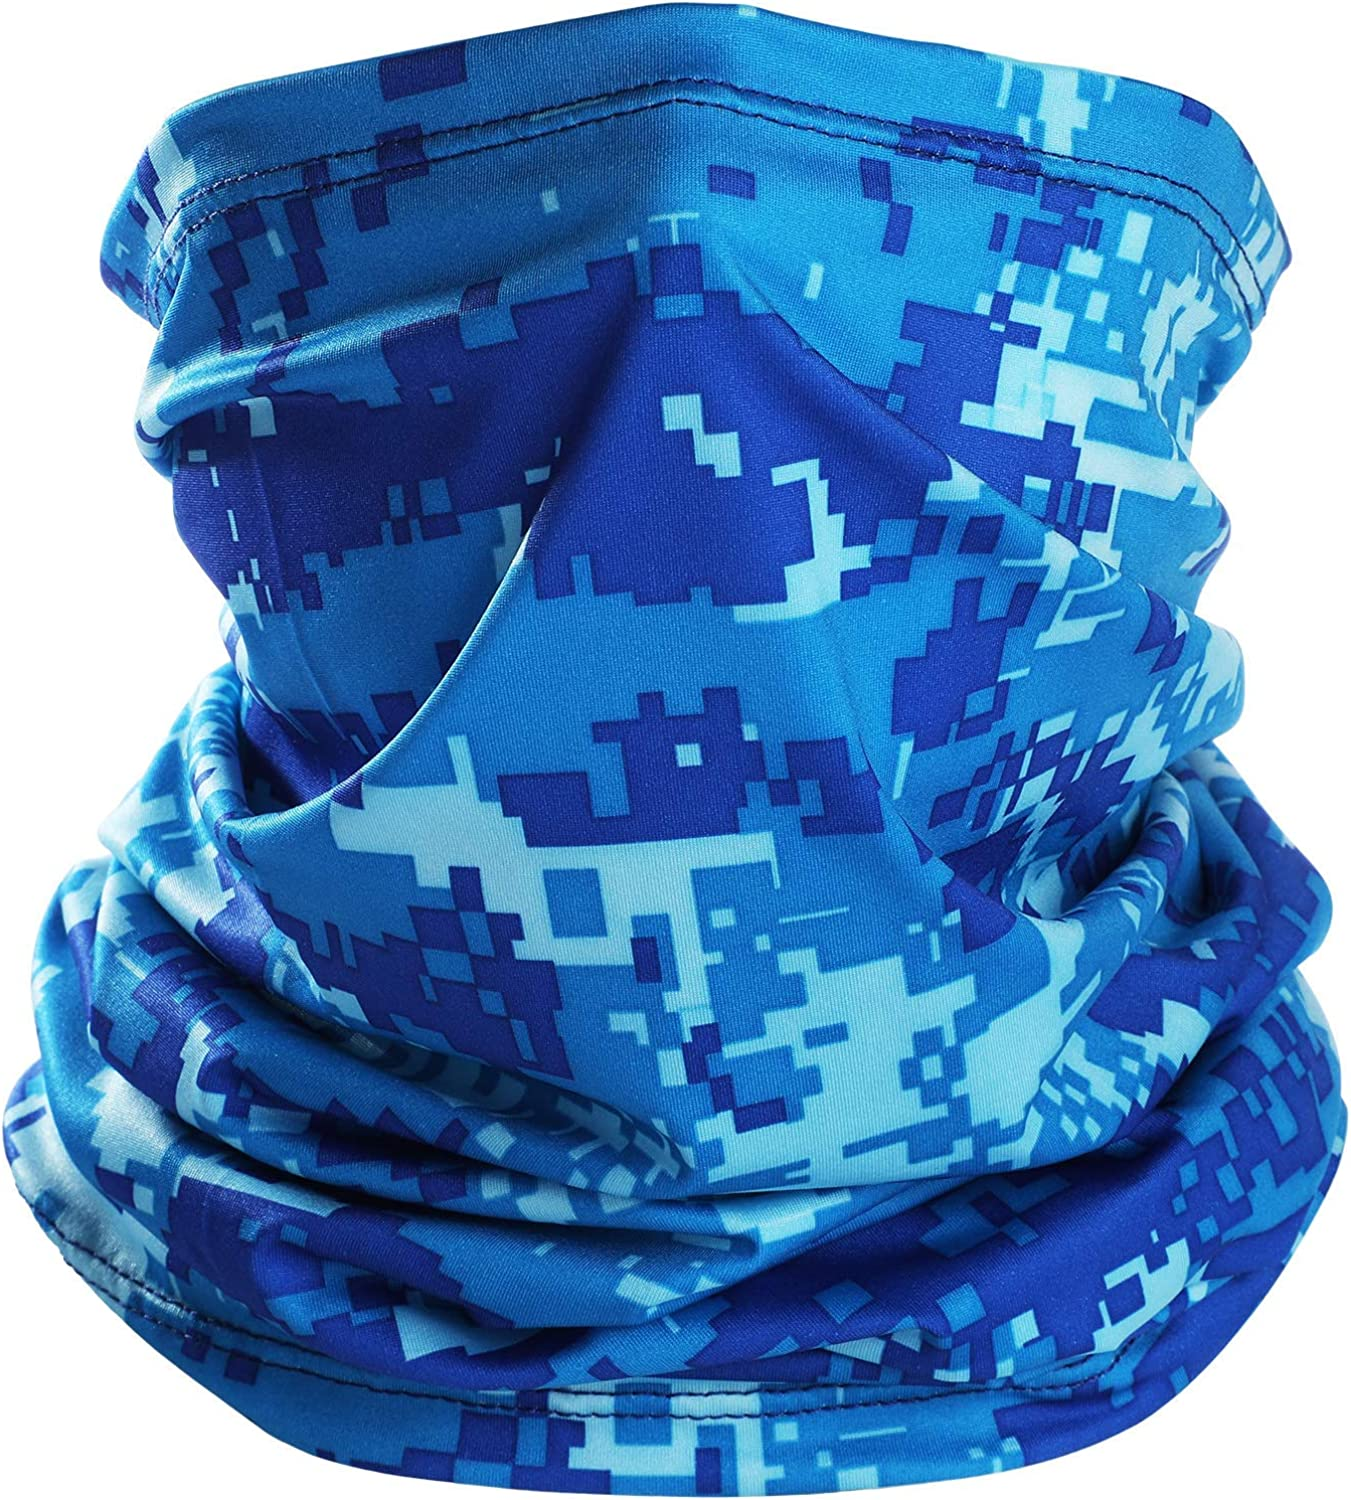 Ligart Cooling Gaiter Lightweight Thin Neck Gaiter Summer Protection from Sun, Surf, Wind and Moisture Face Mask Headwear Headband Bandana for Outdoor Sport